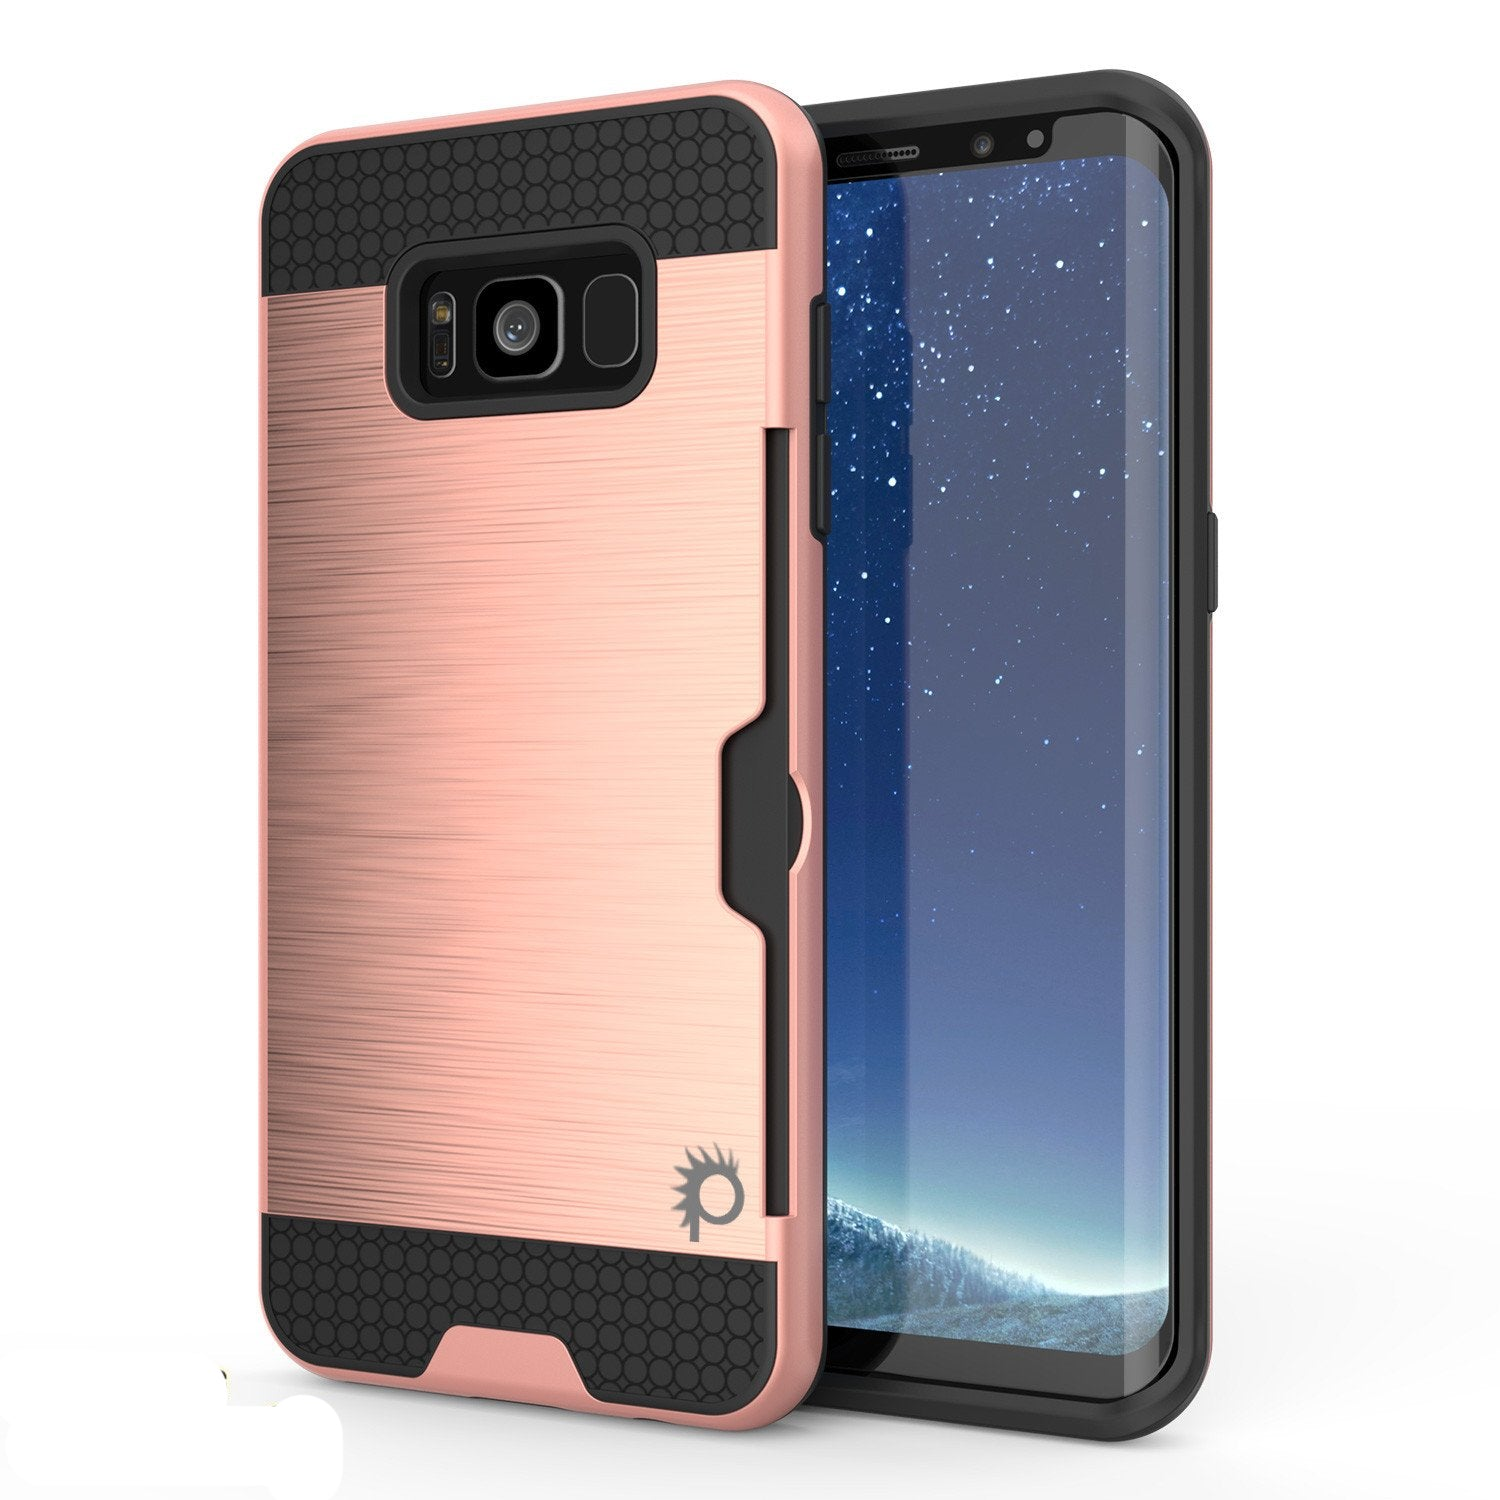 Galaxy S8 Plus Case, PUNKcase [SLOT Series] [Slim Fit] Dual-Layer Armor Cover w/Integrated Anti-Shock System, Credit Card Slot  [Rose Gold]